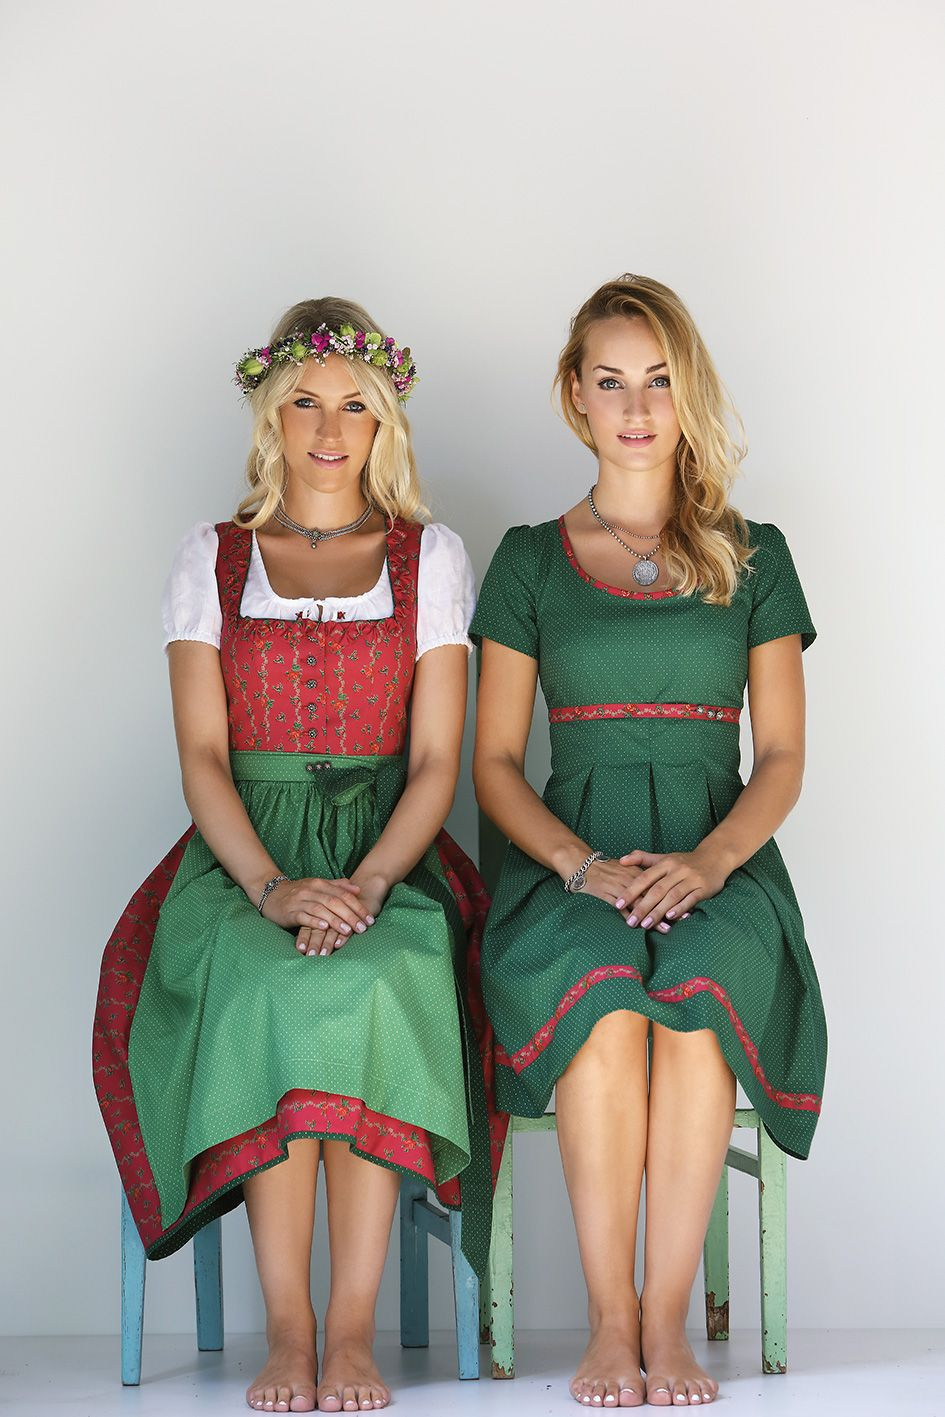 e9cc940cd80b Pin by T.Beyer on Dirndl in 2019   Pinterest   Dirndl, Dresses and ...